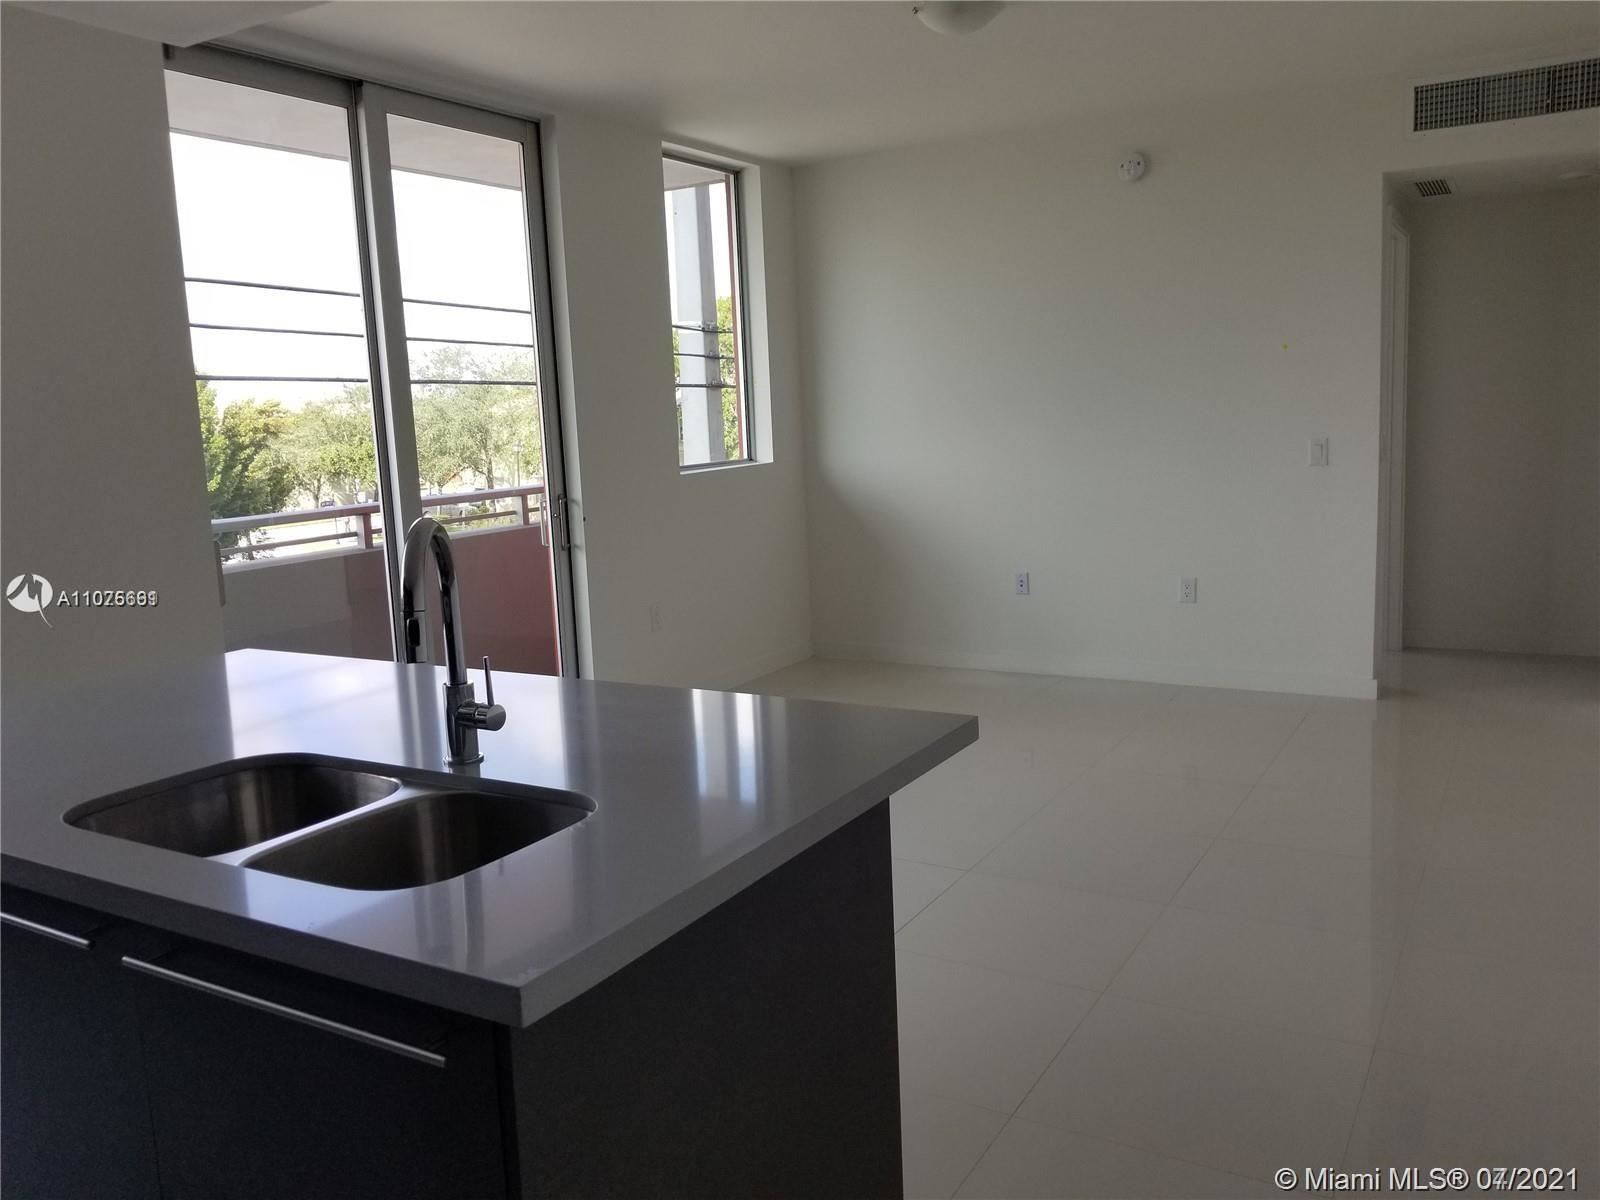 Photo of 7875 NW 107th Ave #218, Doral, FL 33178 (MLS # A11075661)